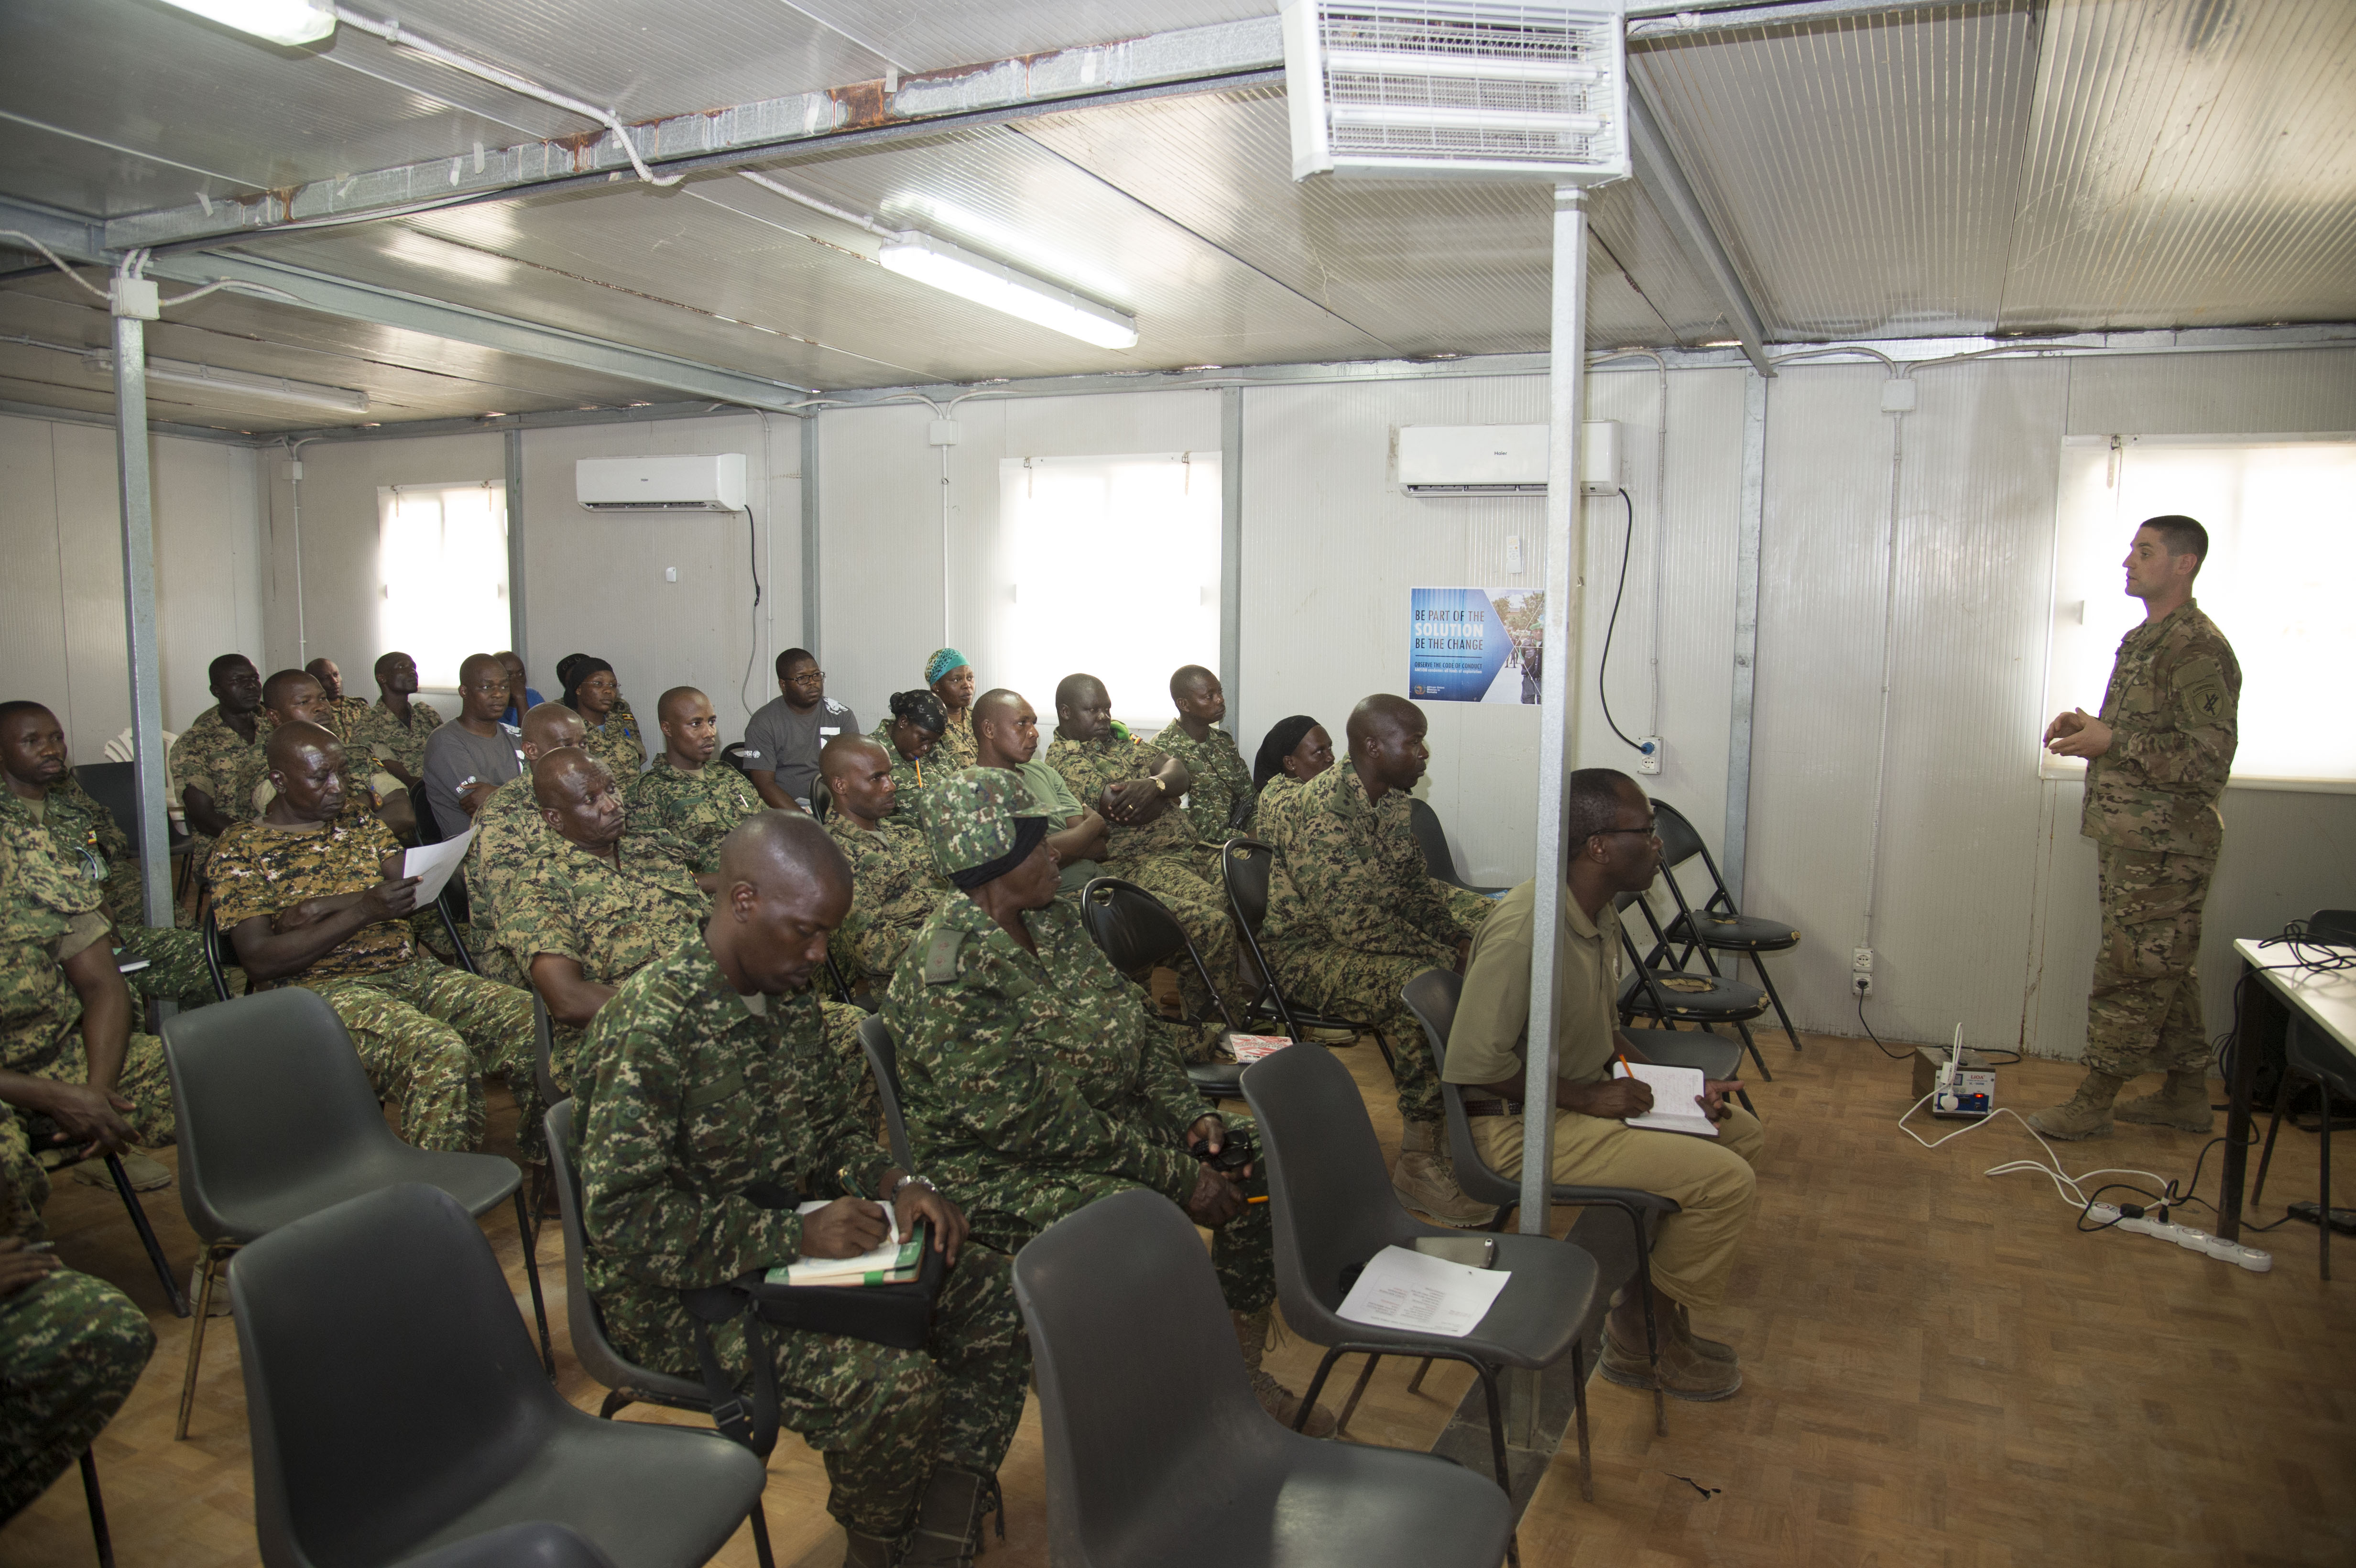 Members of the Uganda People's Defense Force (UPDF) listen to U.S. Army Staff Sgt. Matthew Glaberman, Charlie Company, 411th Civil Affairs Battalion operations sergeant, as he speaks about ways to prepare for combat stress before a deployment Oct 10, 2016, at Mogadishu, Somalia. The UPDF is deployed in support of the African Union Mission to Somalia to combat extremist terrorists in the region and restore stability. (U.S. Air Force photo by Staff Sgt. Eric Summers Jr.)